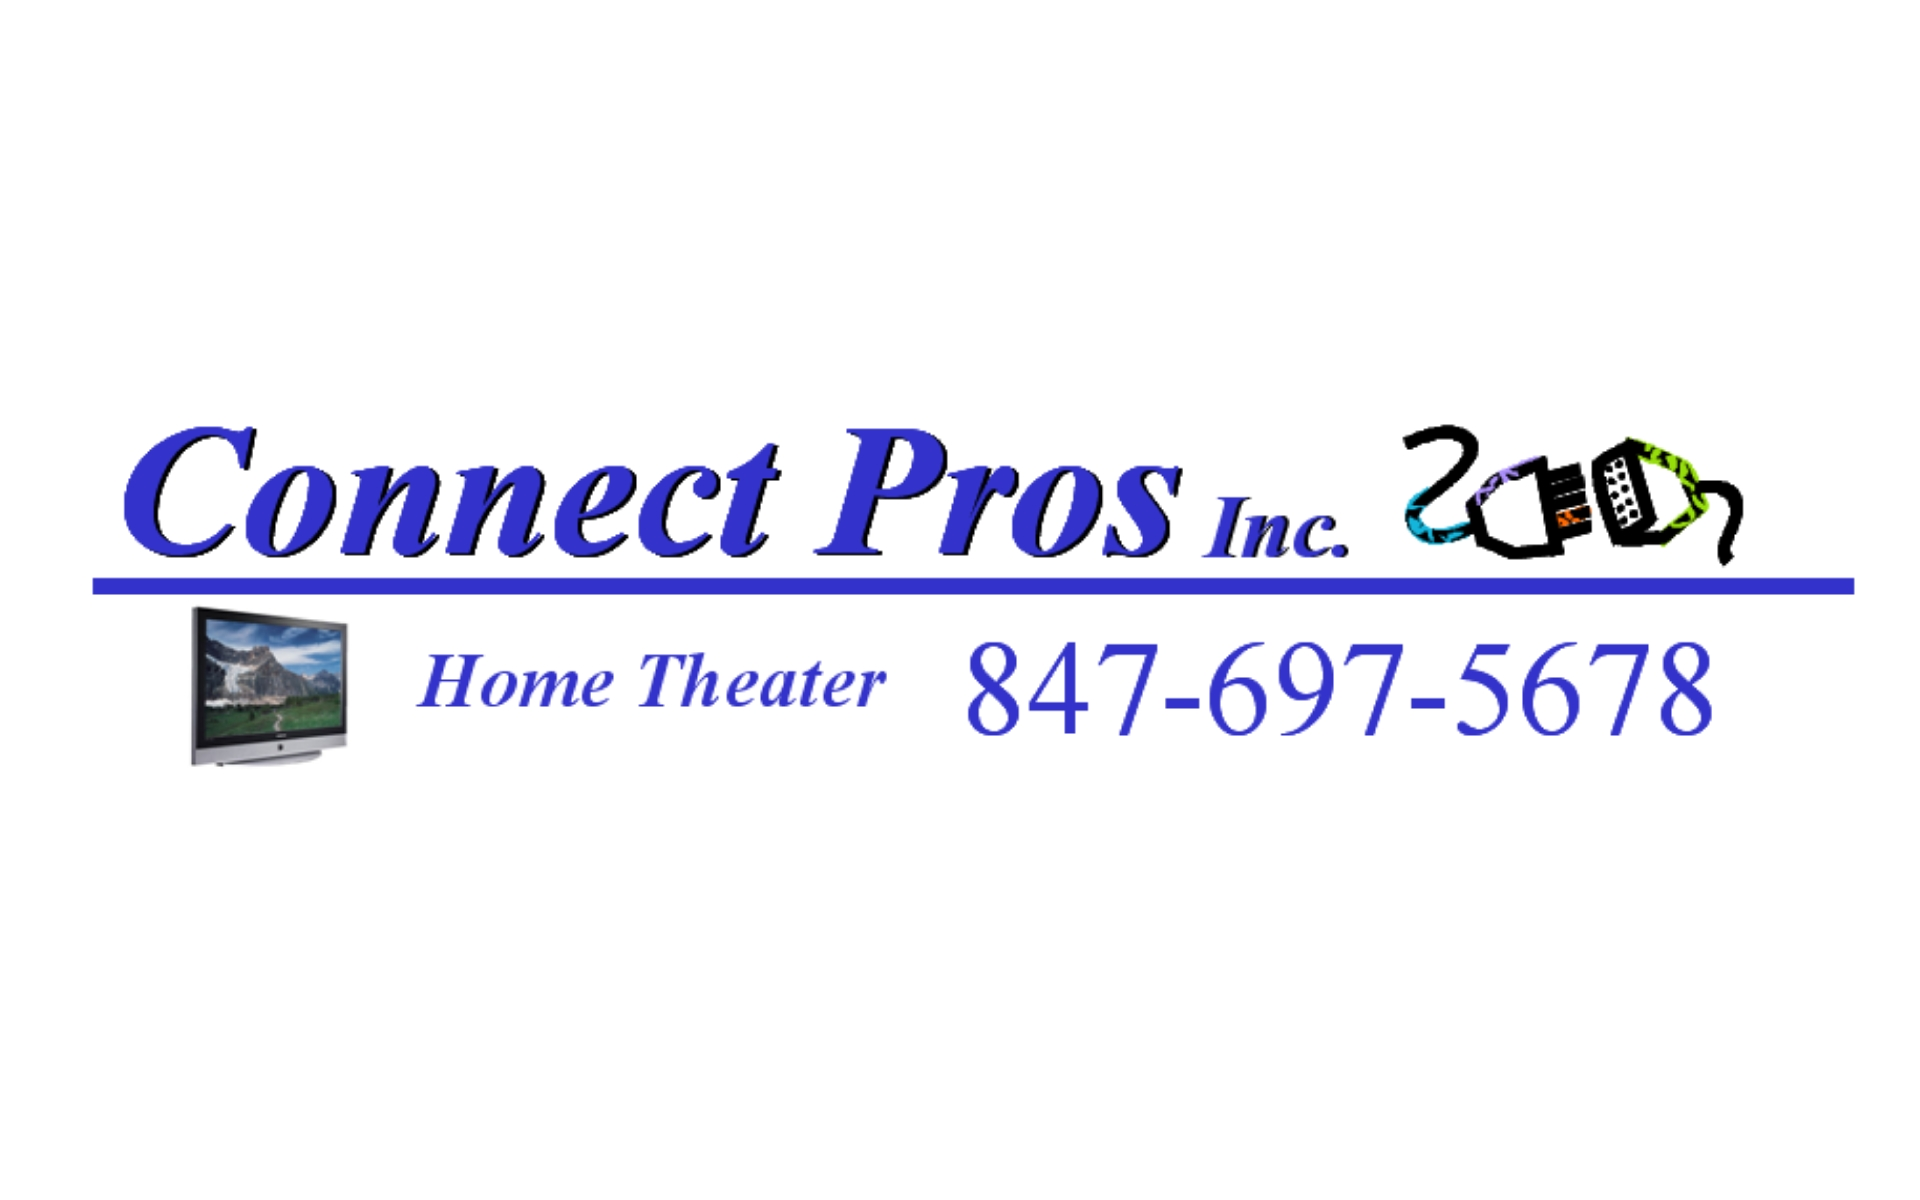 Home Theater logo